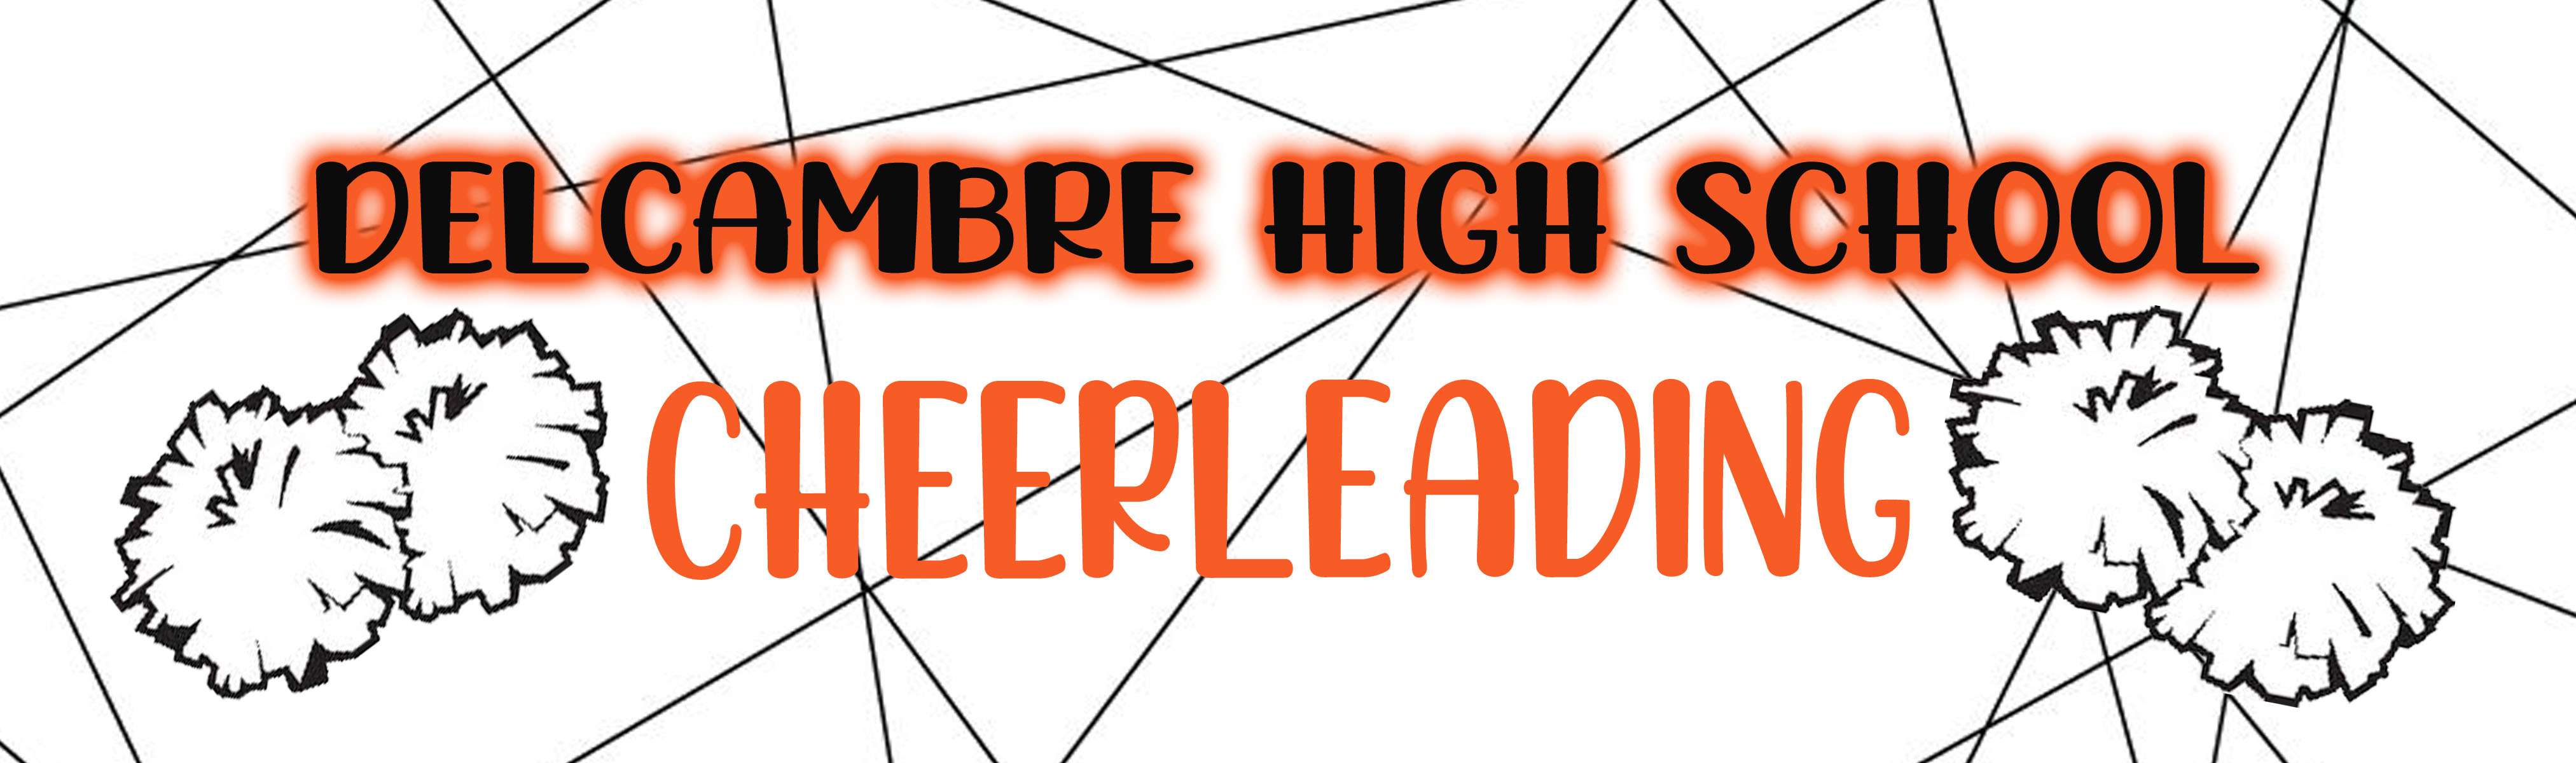 Cheerleading Banner